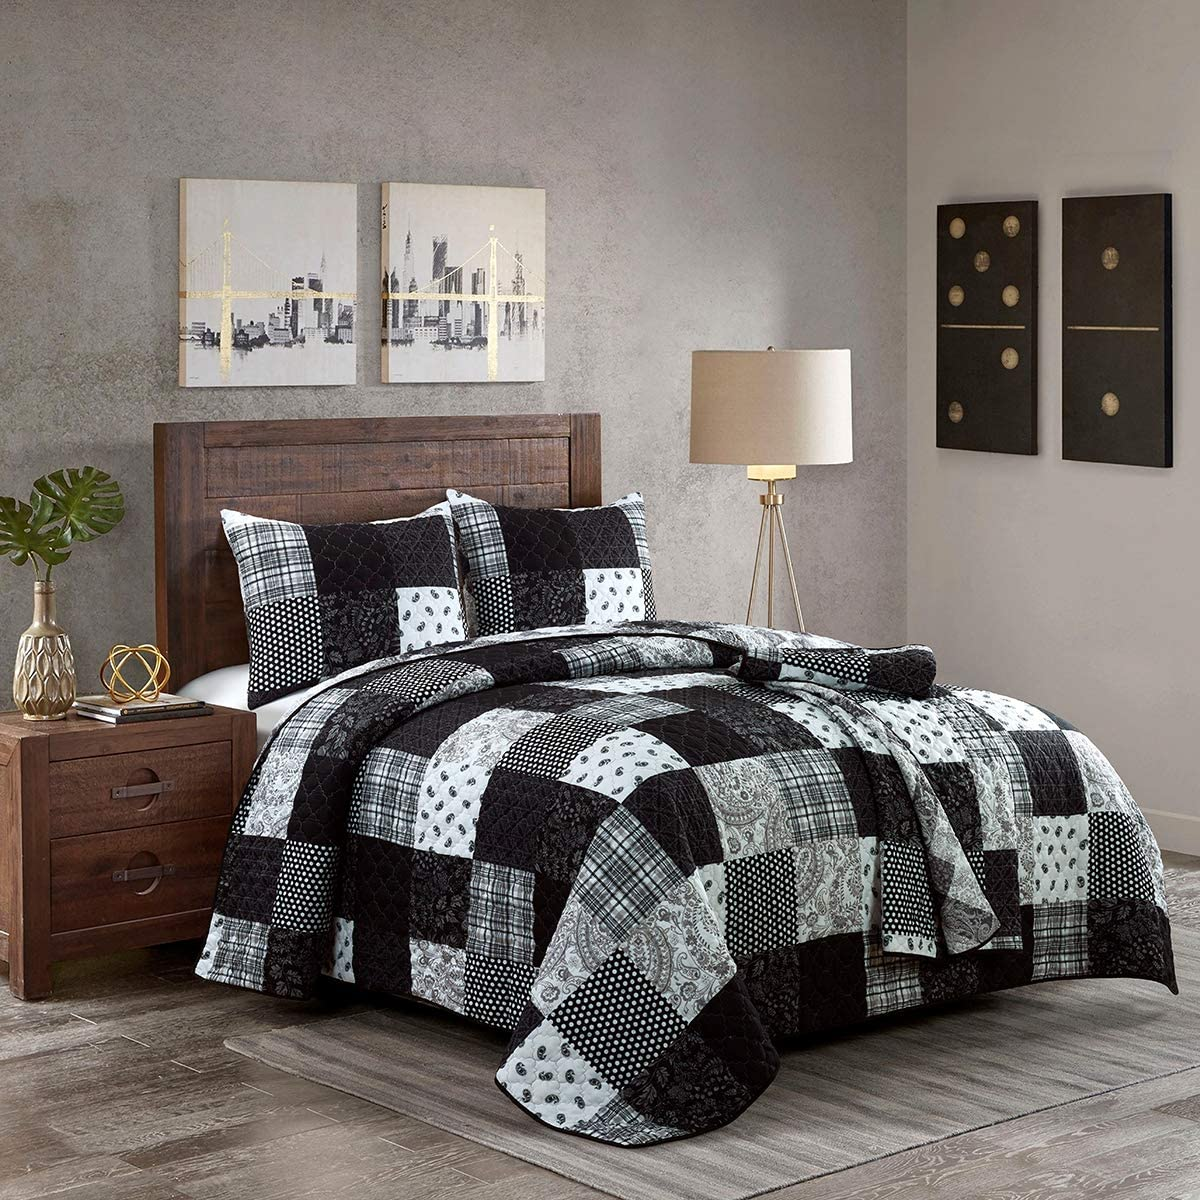 King Bedding Set - 3 Piece - London by Donna Sharp - Contemporary Quilt Set with King Quilt and Two Standard Pillow Shams - Machine Washable